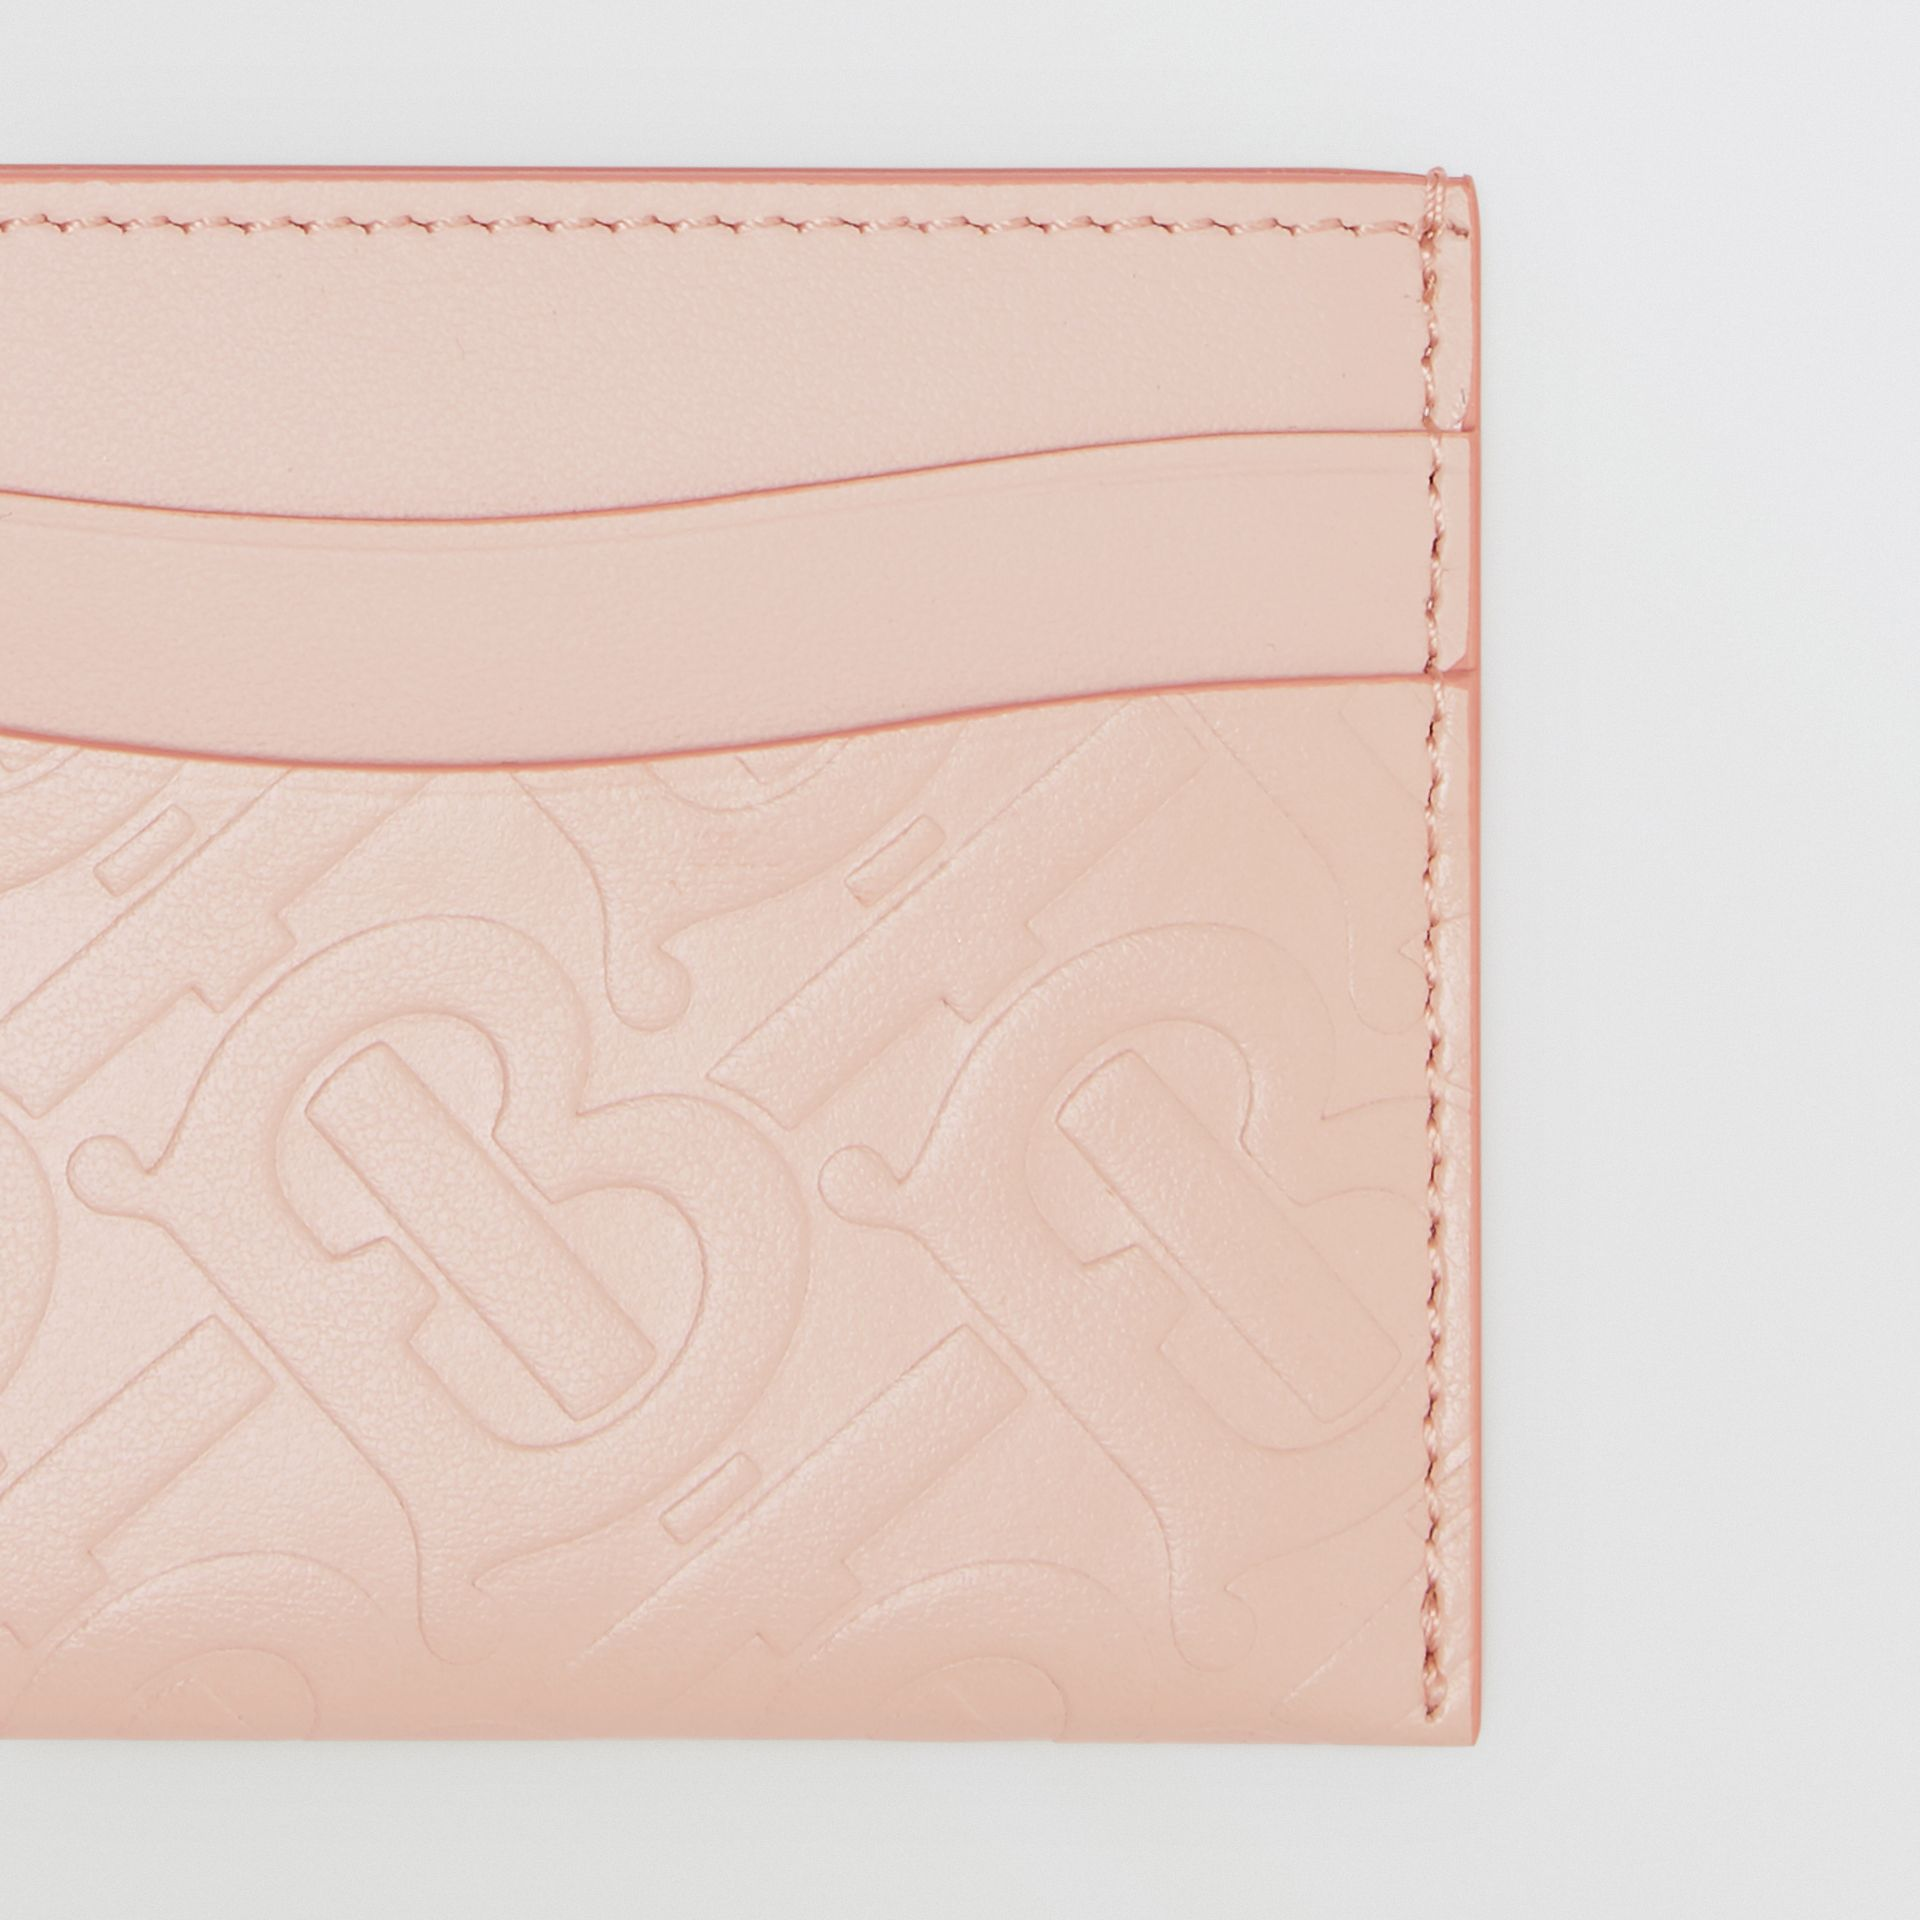 Monogram Leather Card Case in Rose Beige - Women | Burberry Canada - gallery image 1